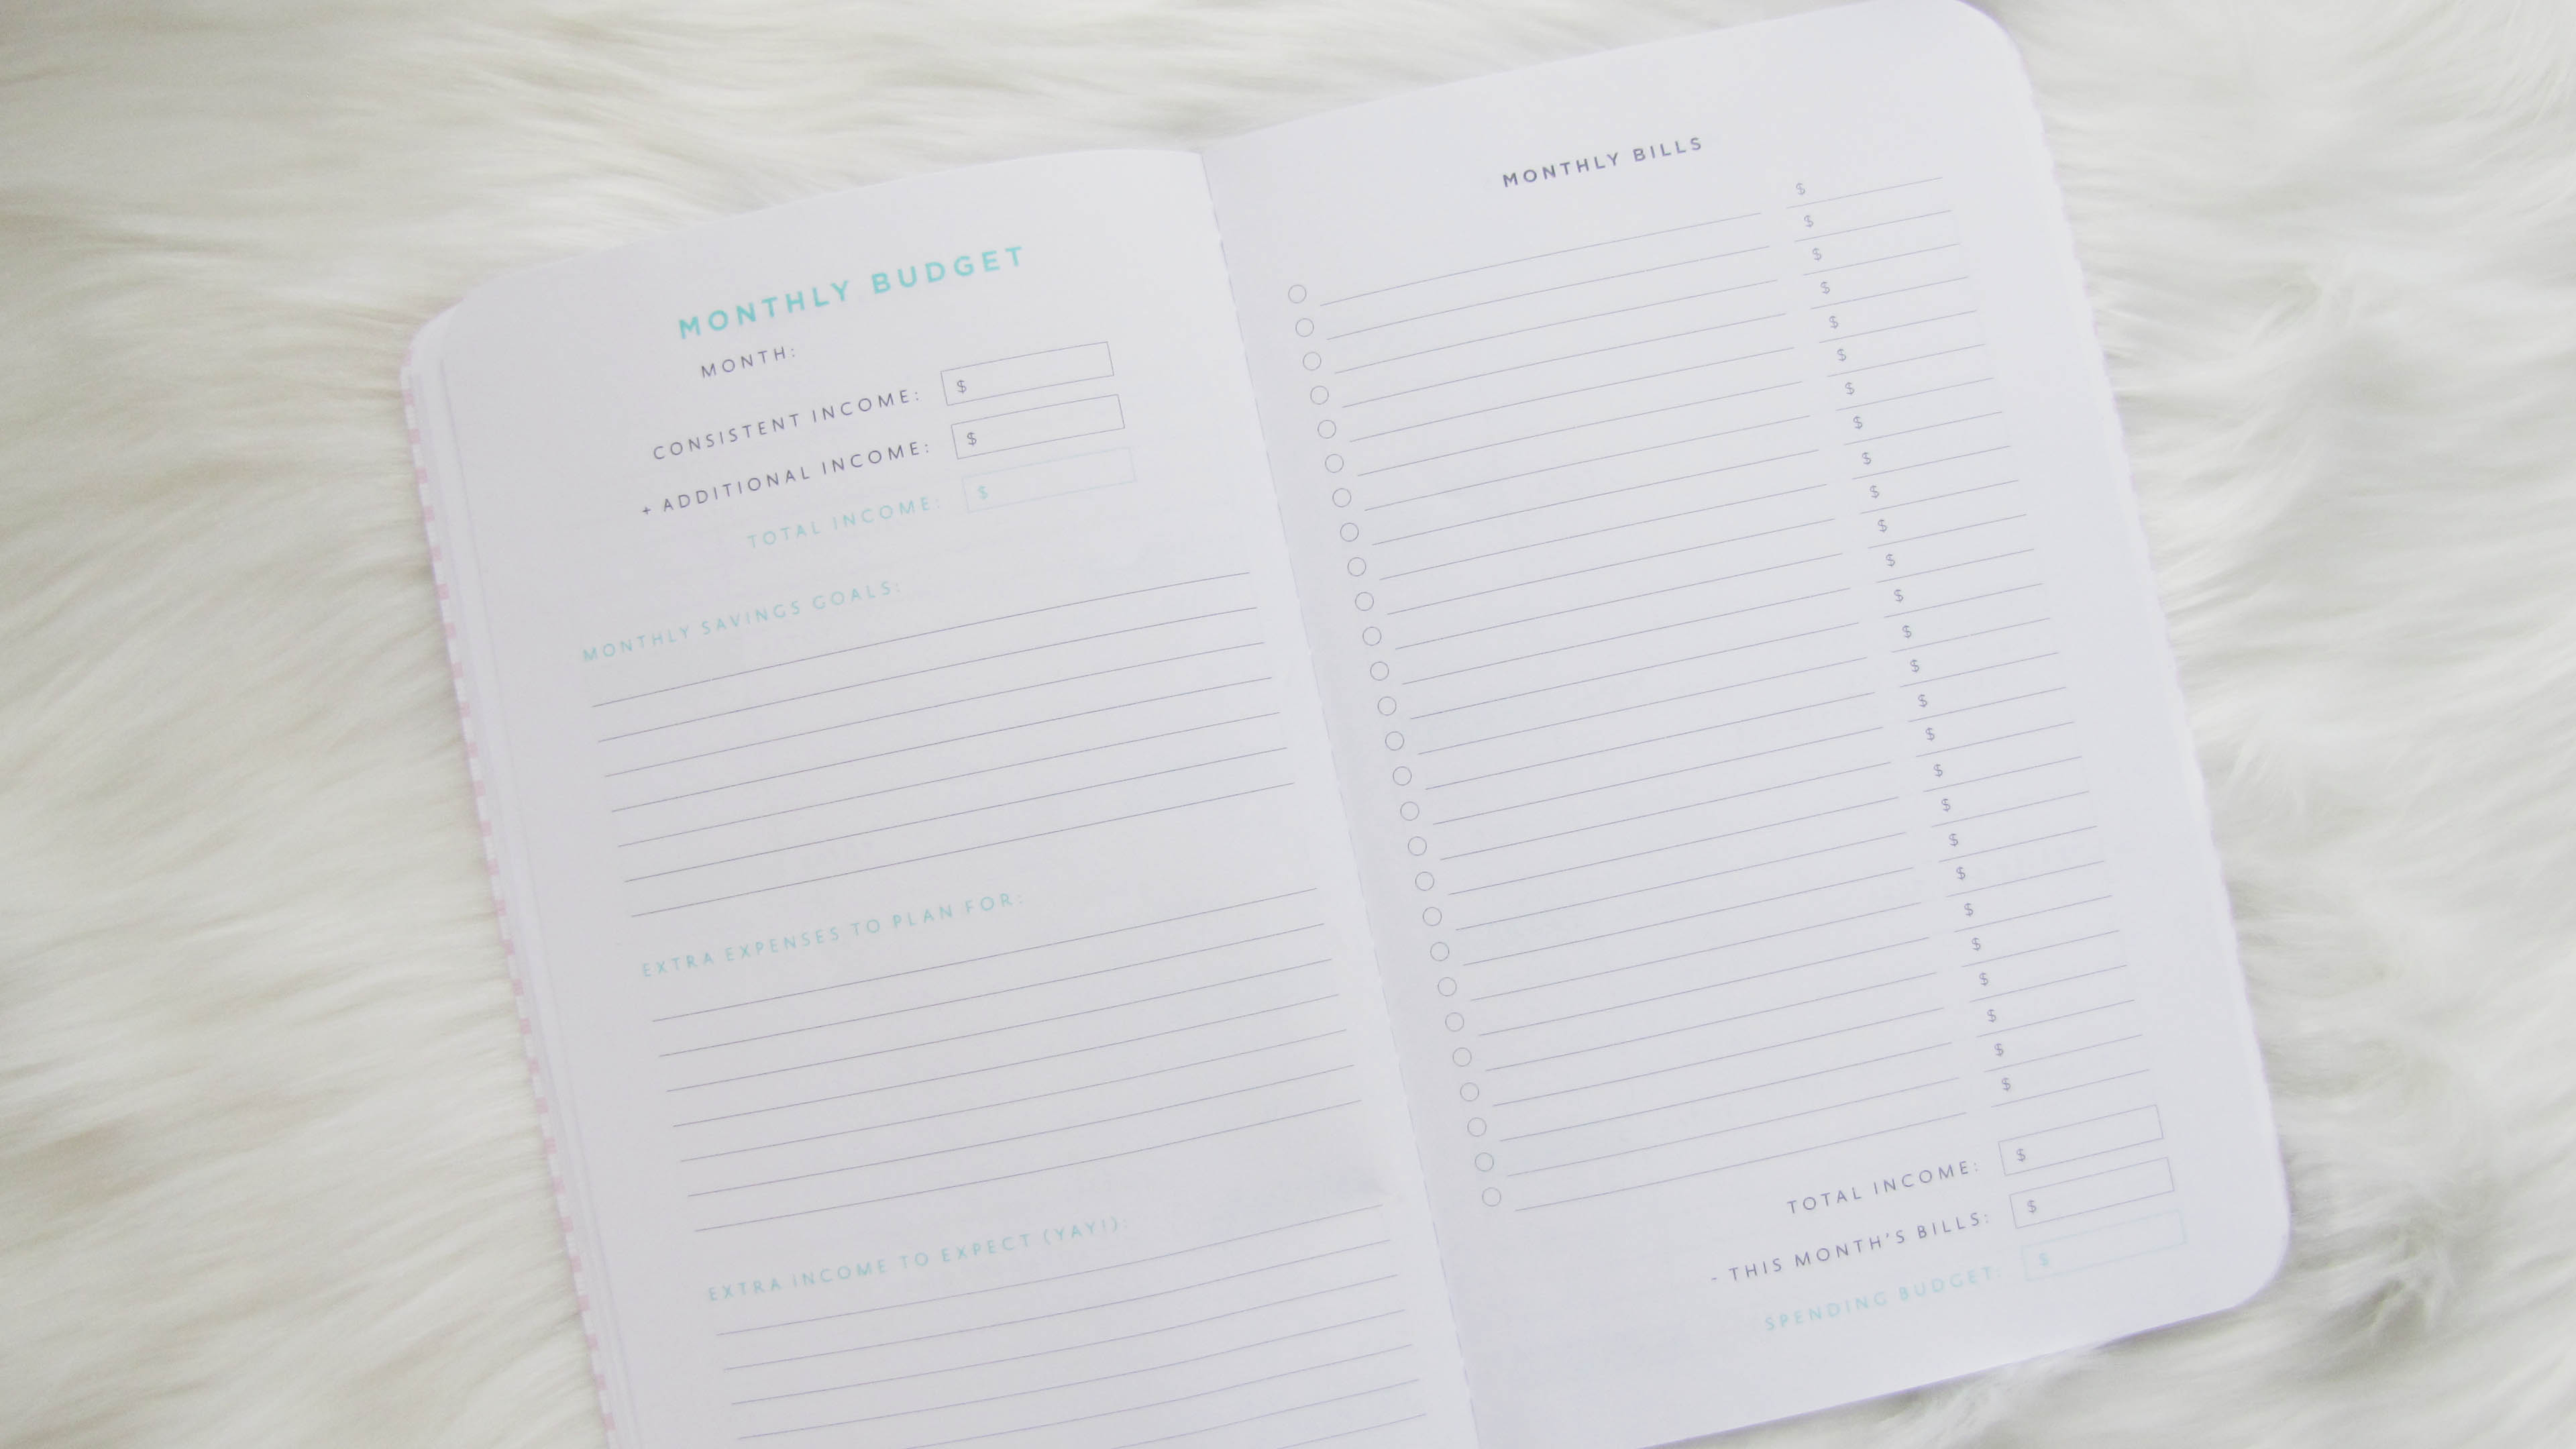 How do use a budget planner | Monthly Budget Page of budget planner | Margaret Paige